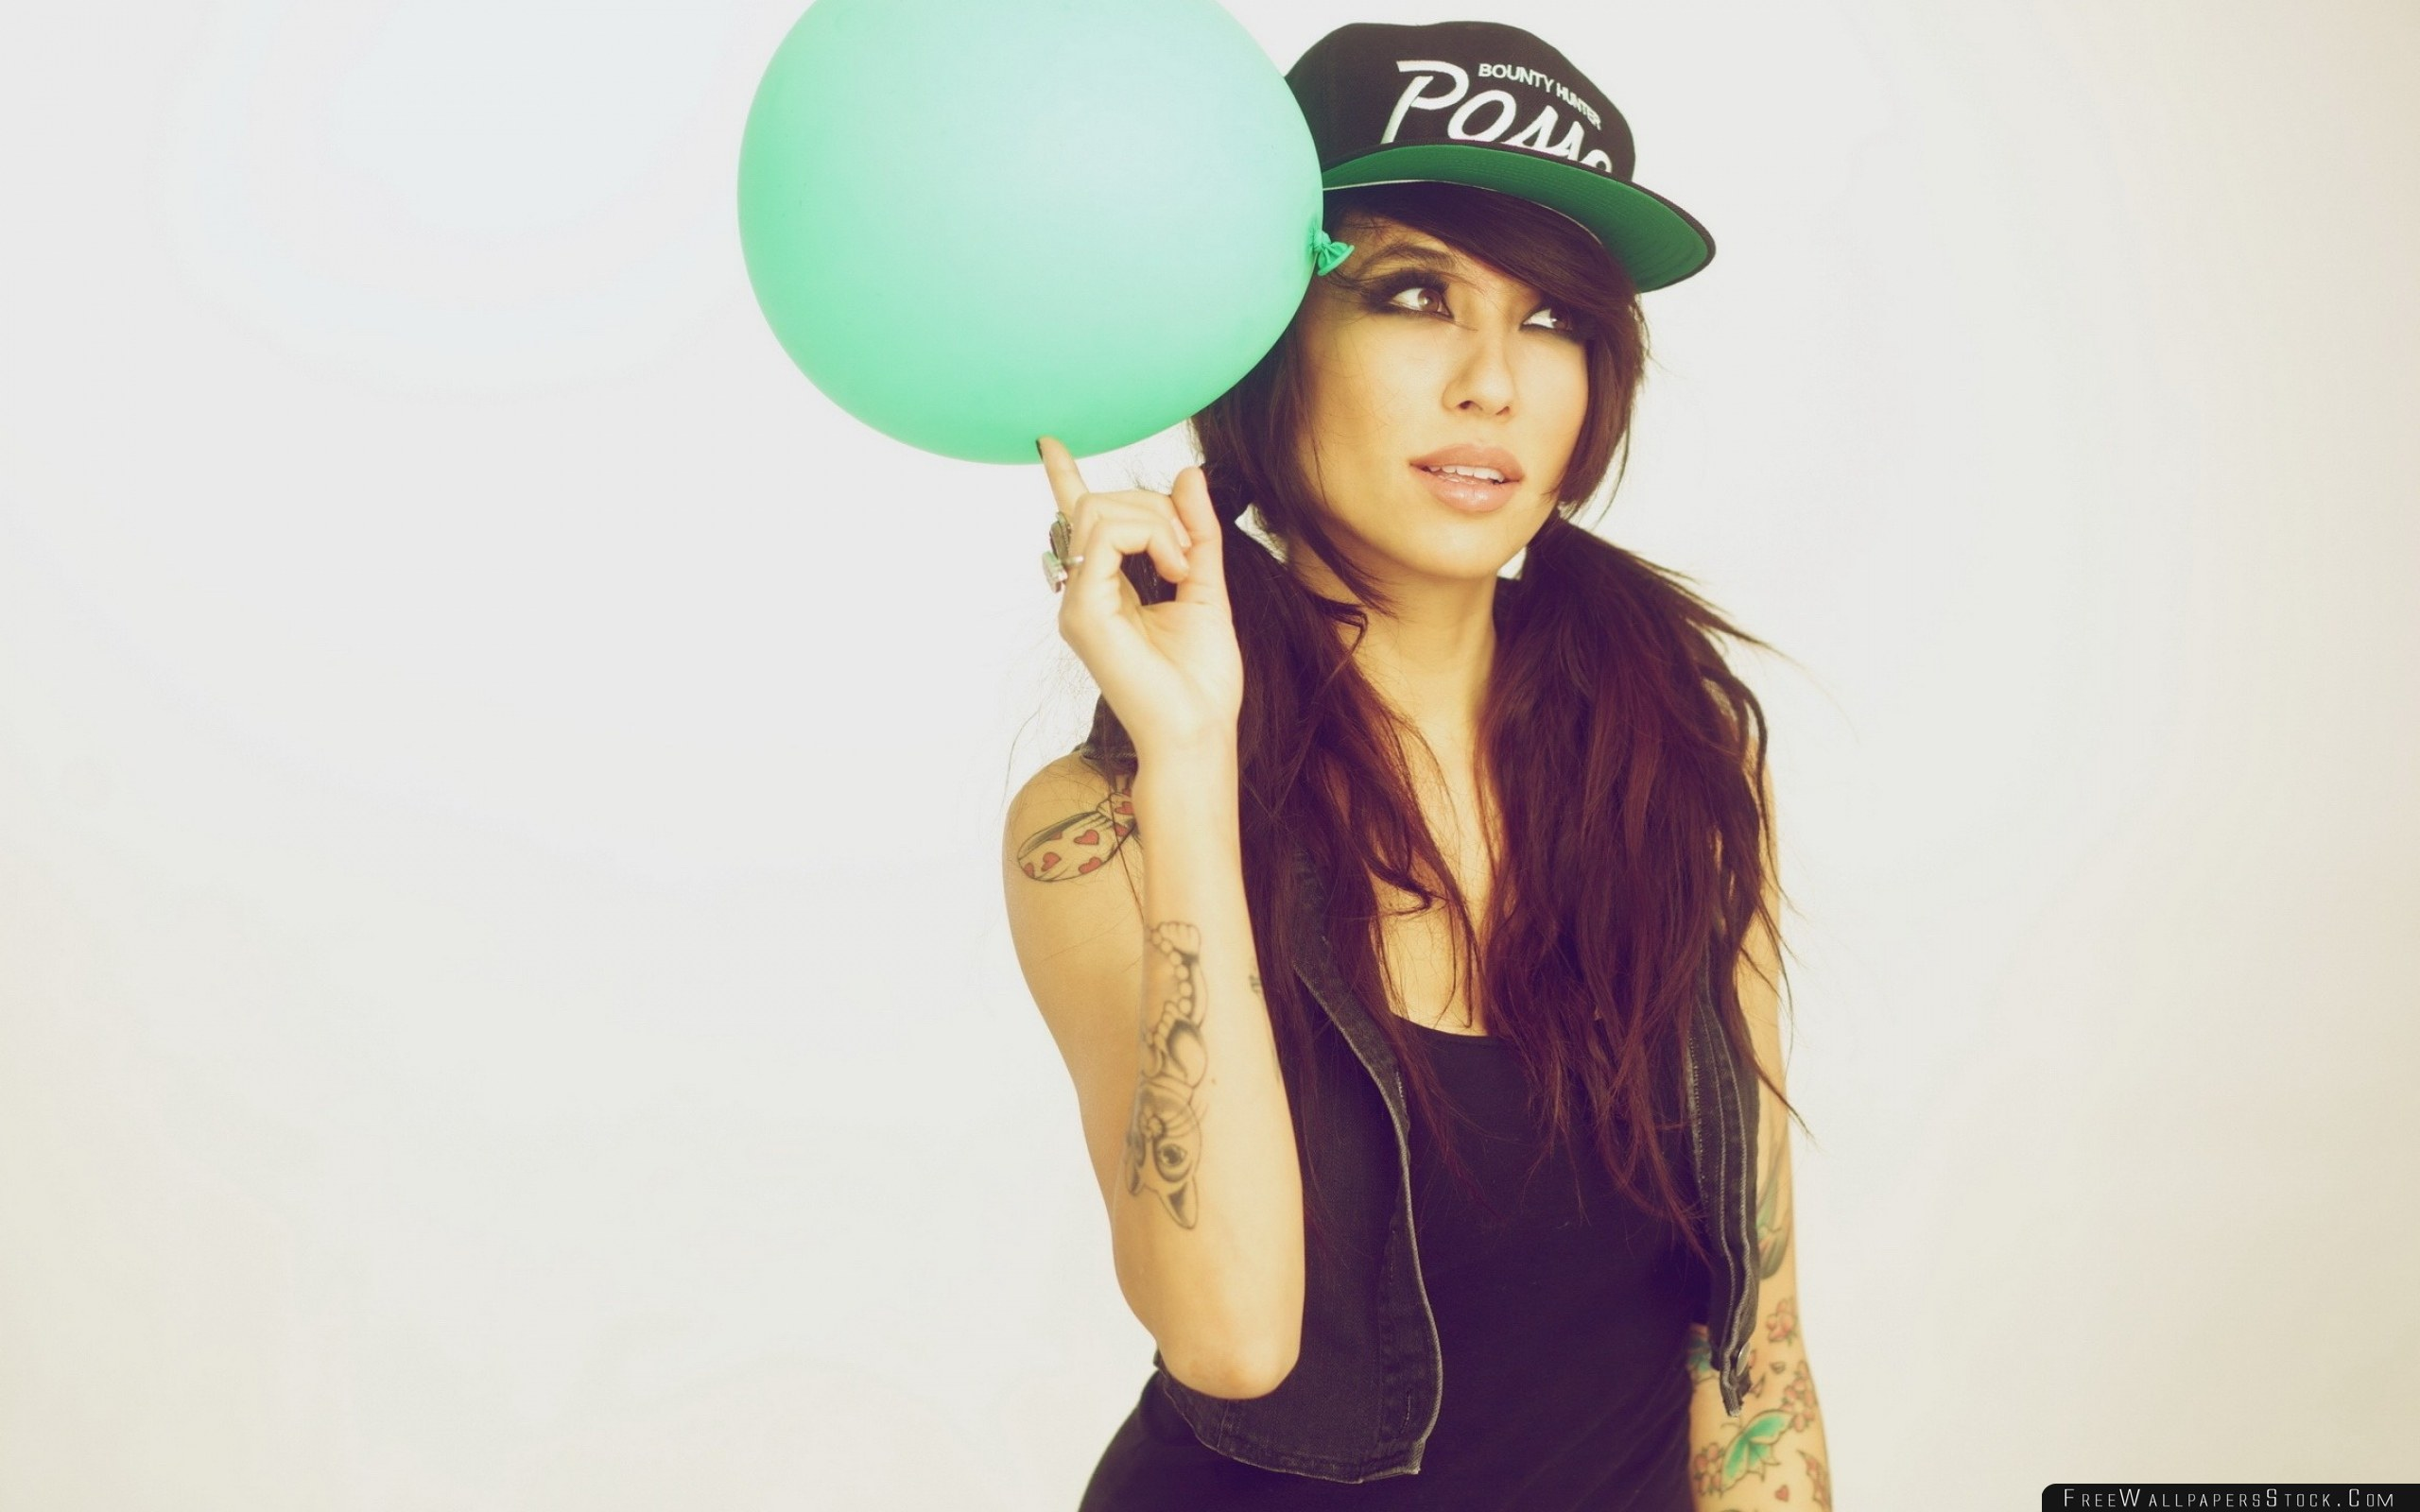 Download Free Wallpaper Brunette Girl Balloon Hat Tattoos Swag